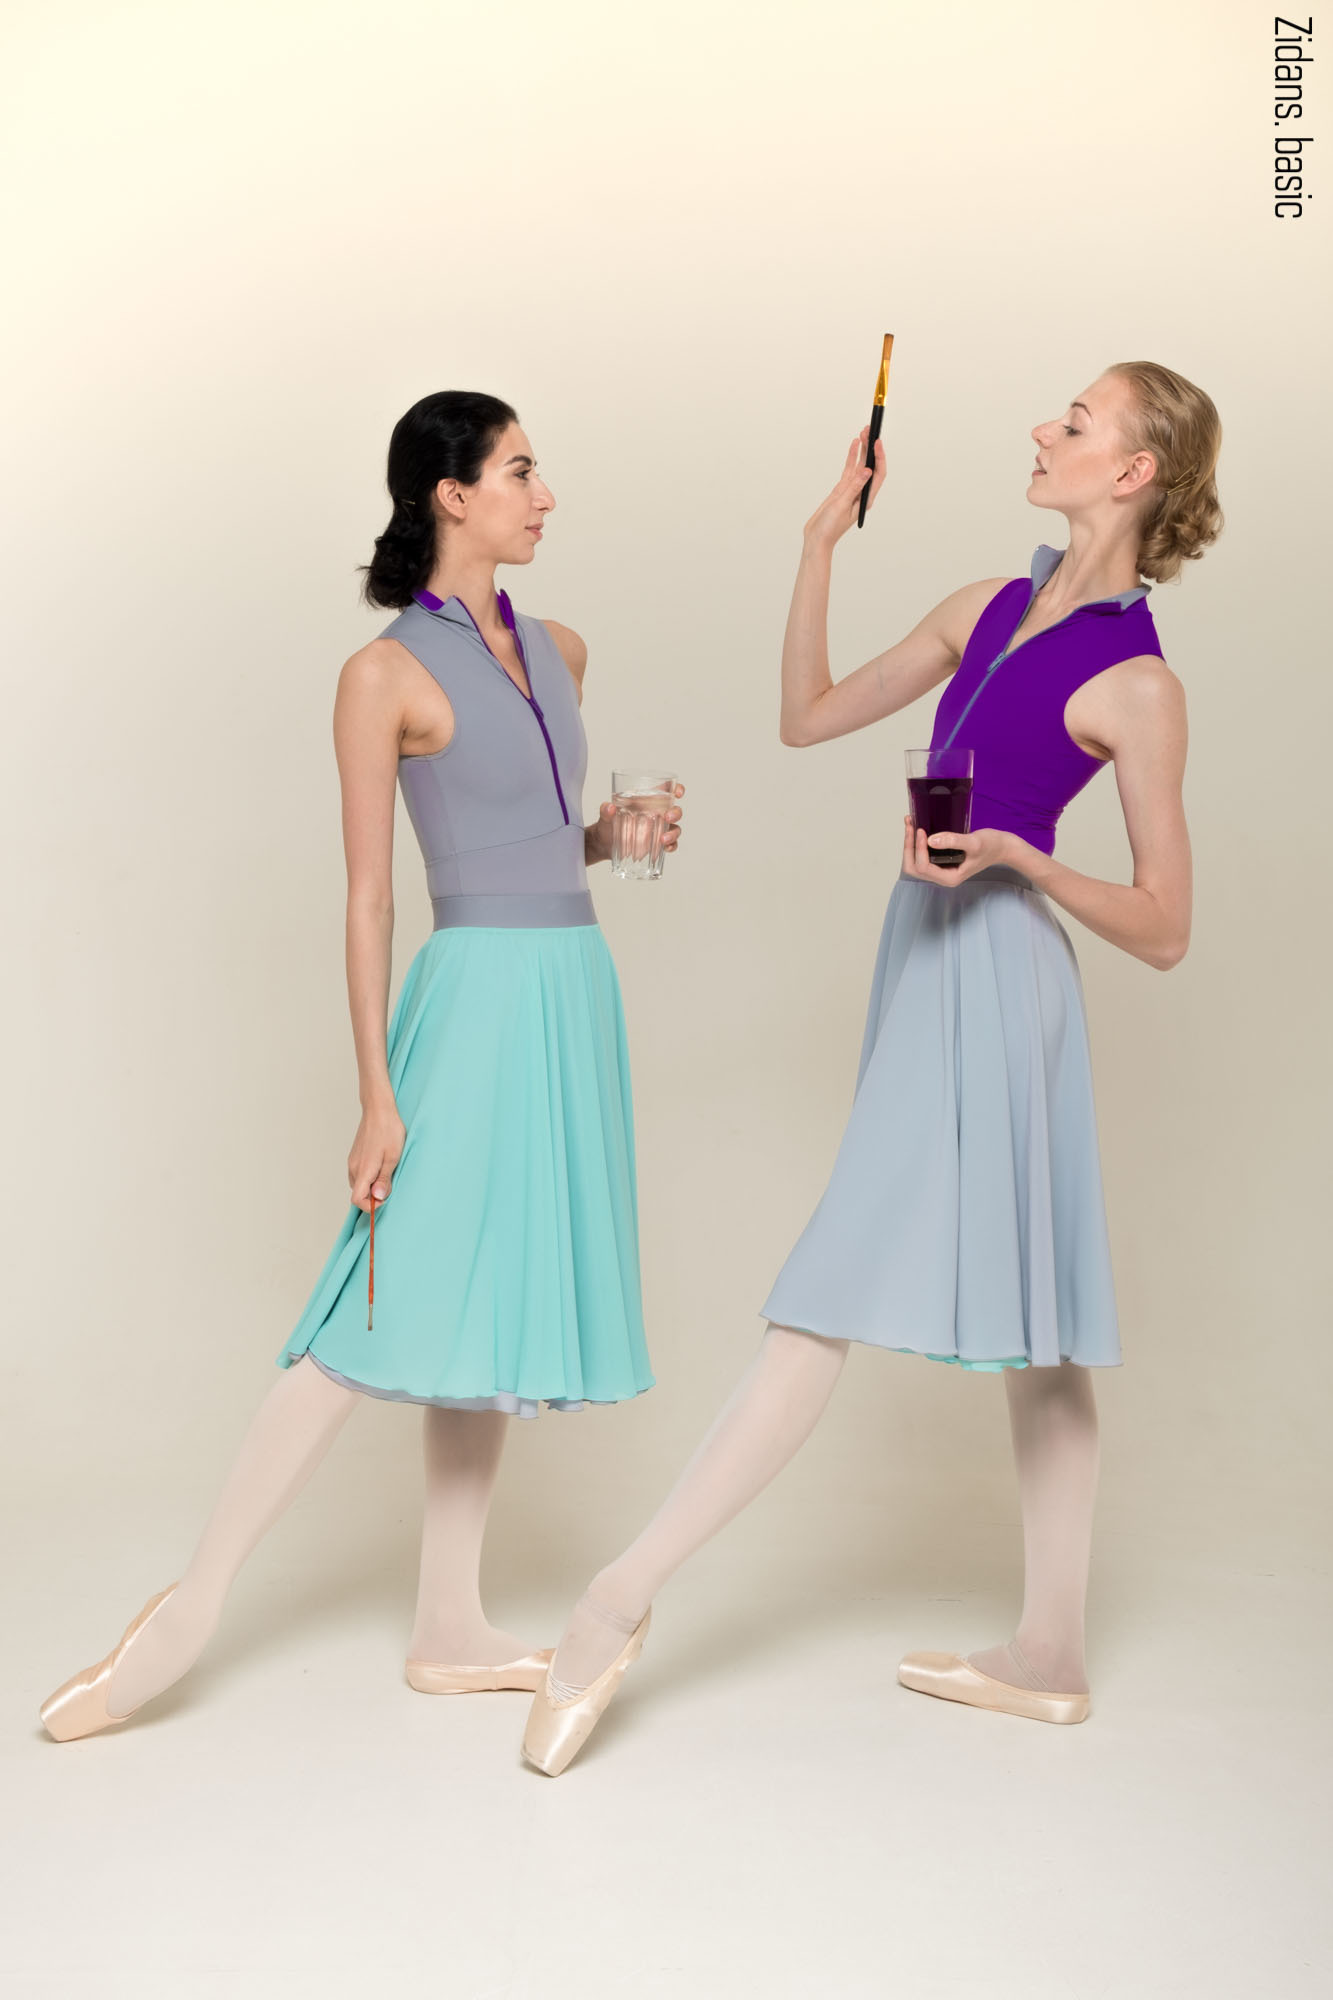 H2O two-sided rehearsal skirt